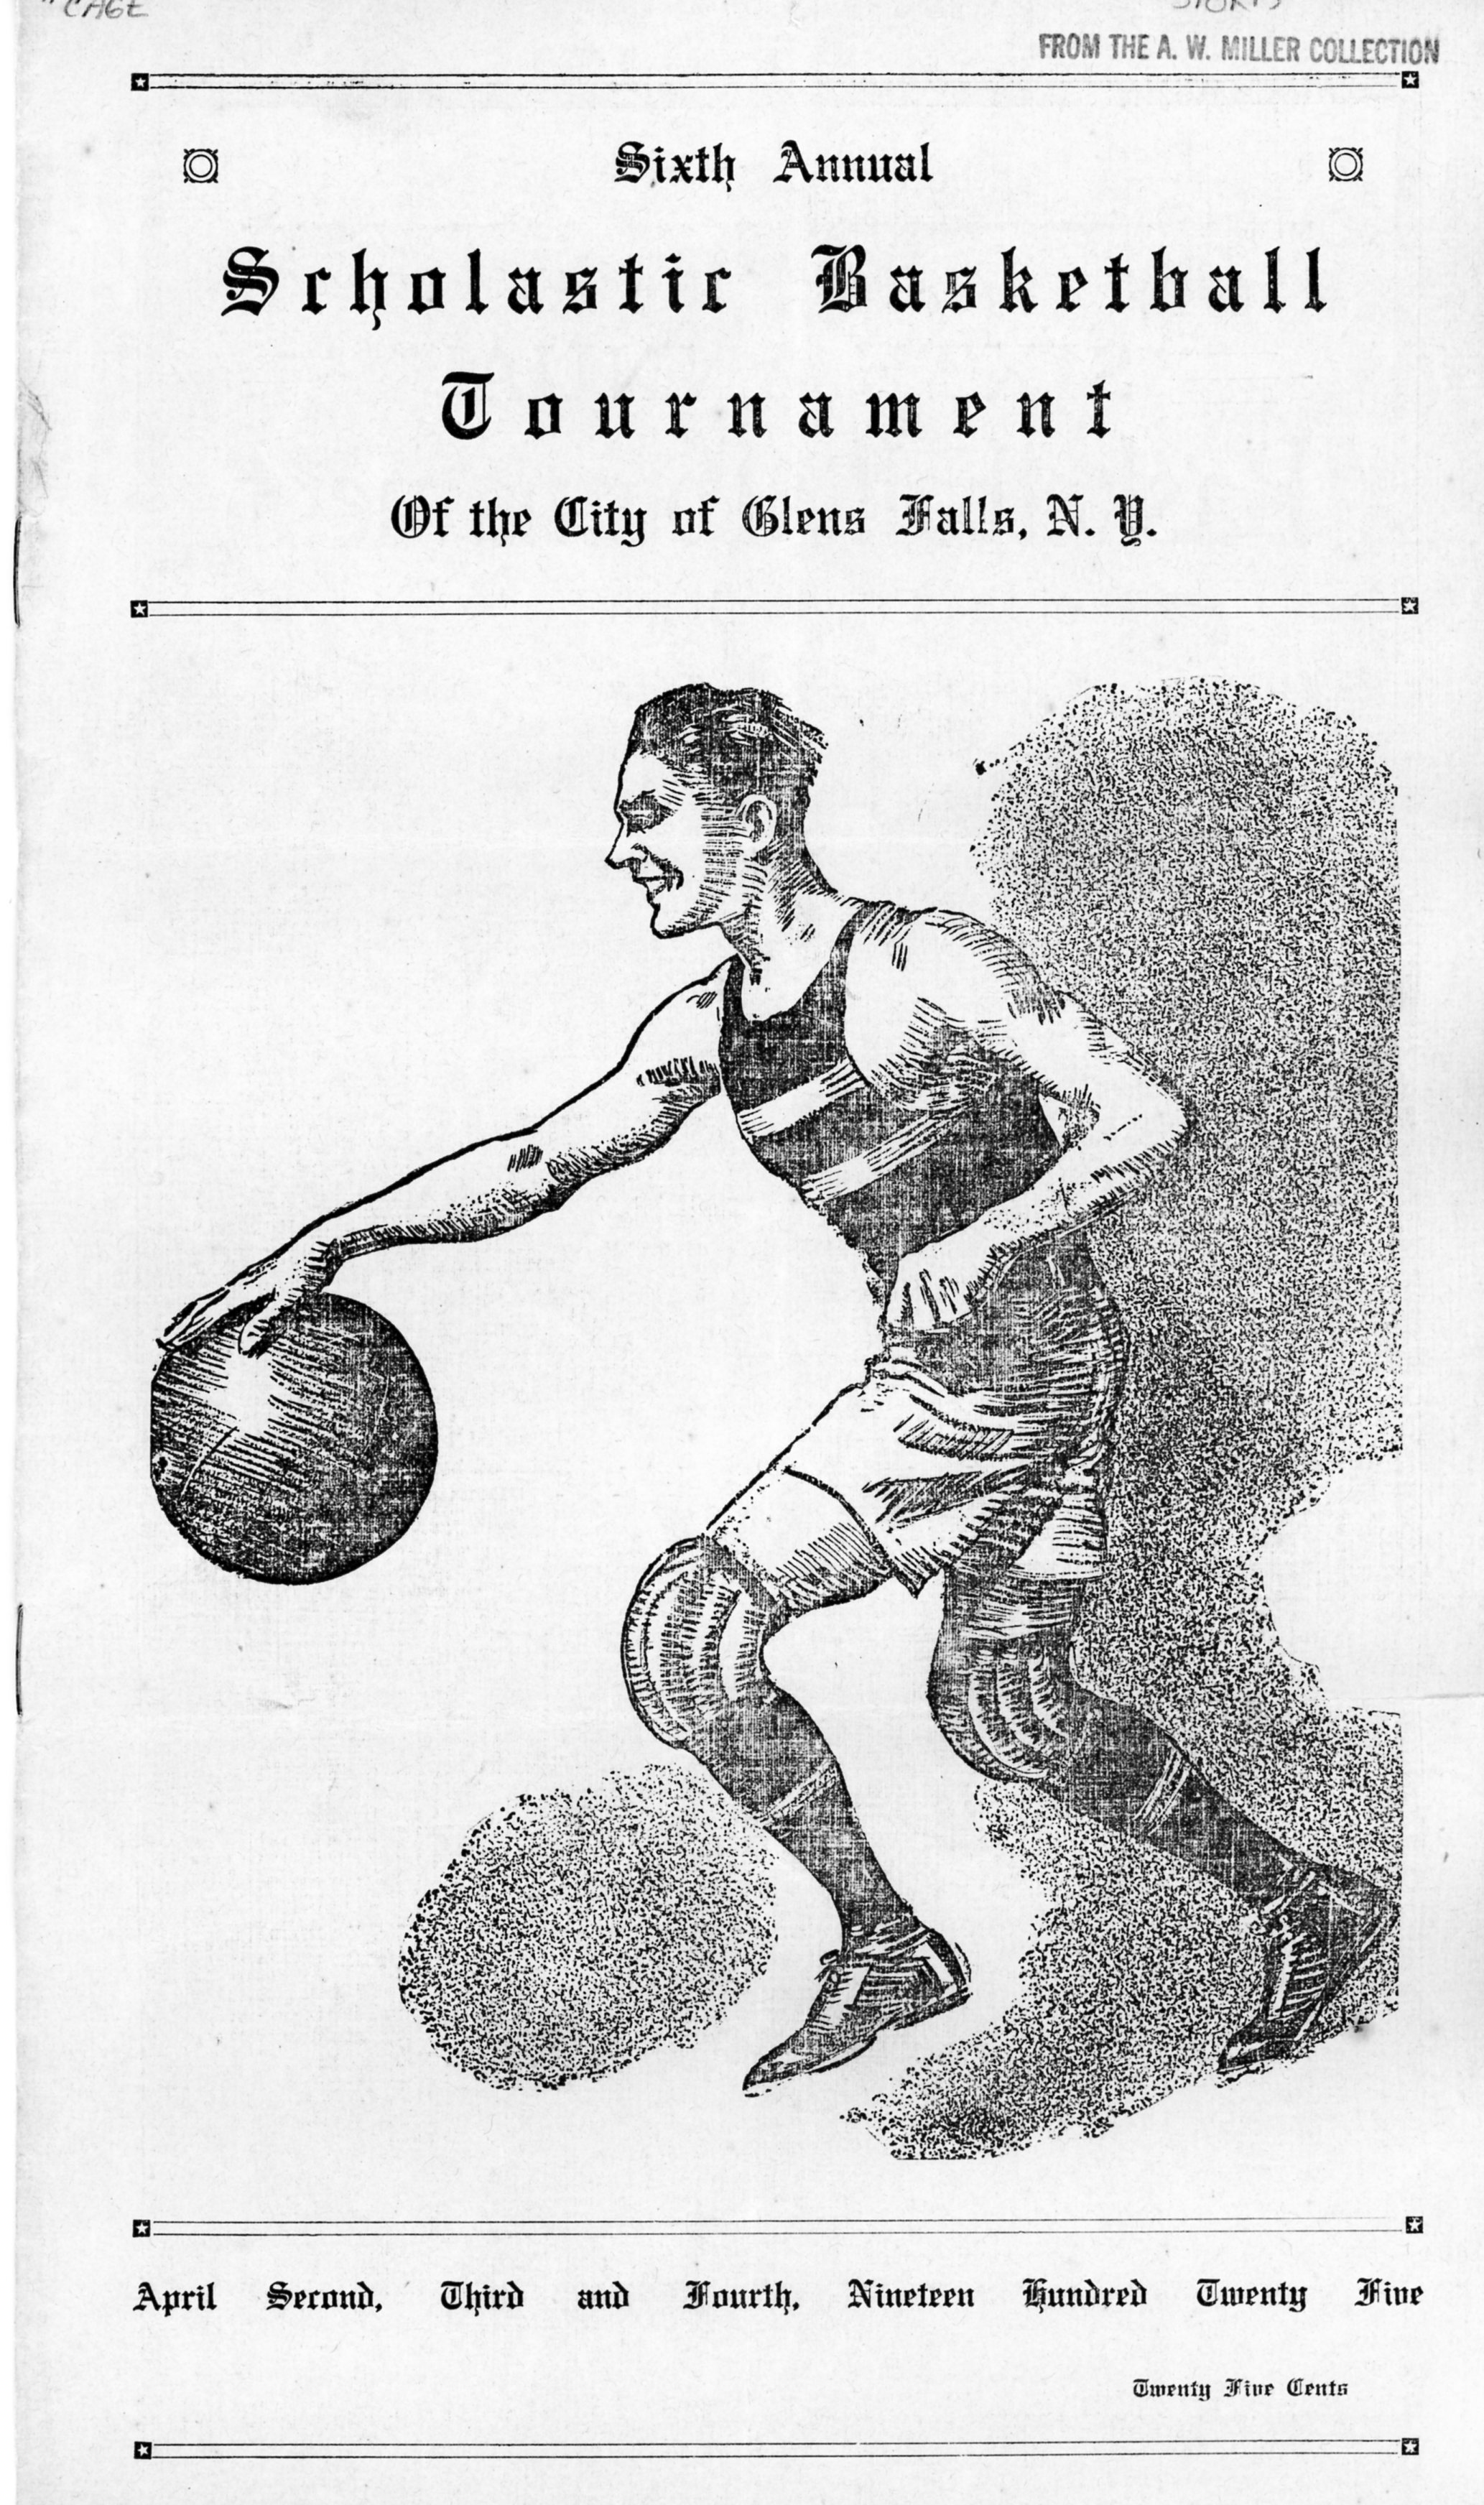 Eastern States Basketball Tournament Program Cover - 1926.   Courtesy of    The Folklife Center at Crandall Public Library   .